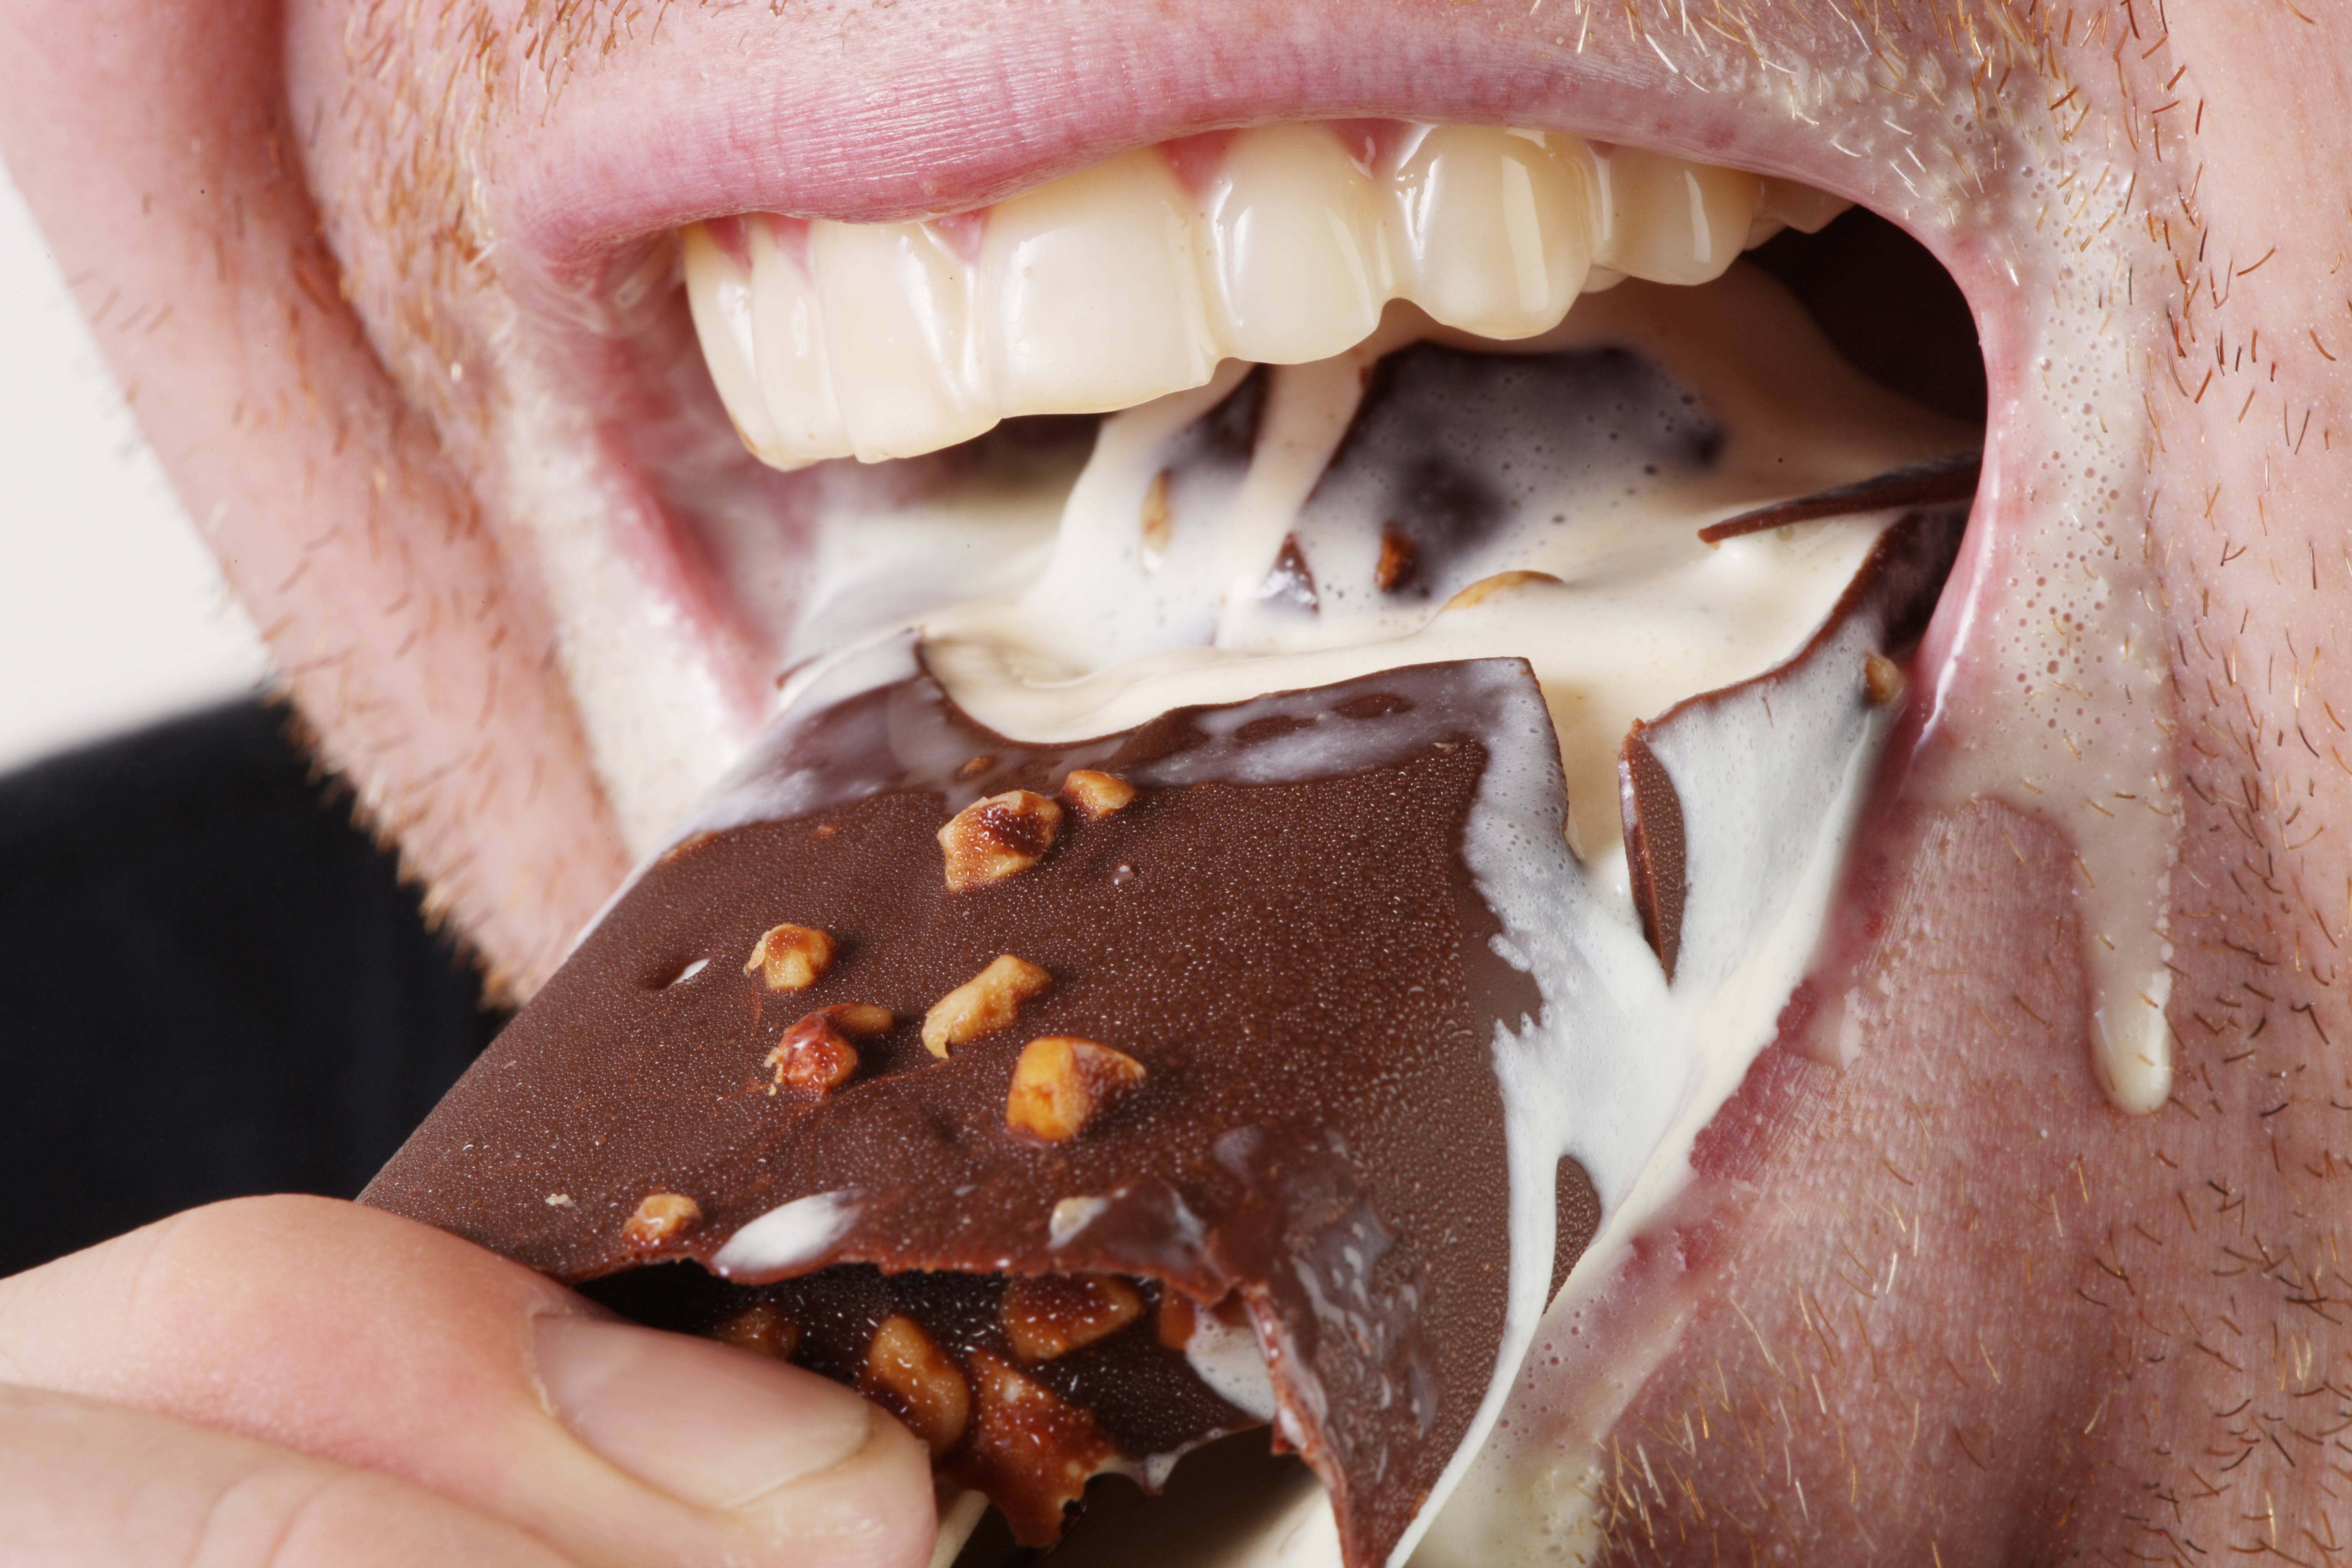 Close up of an unshaven man eating an ice cream bar